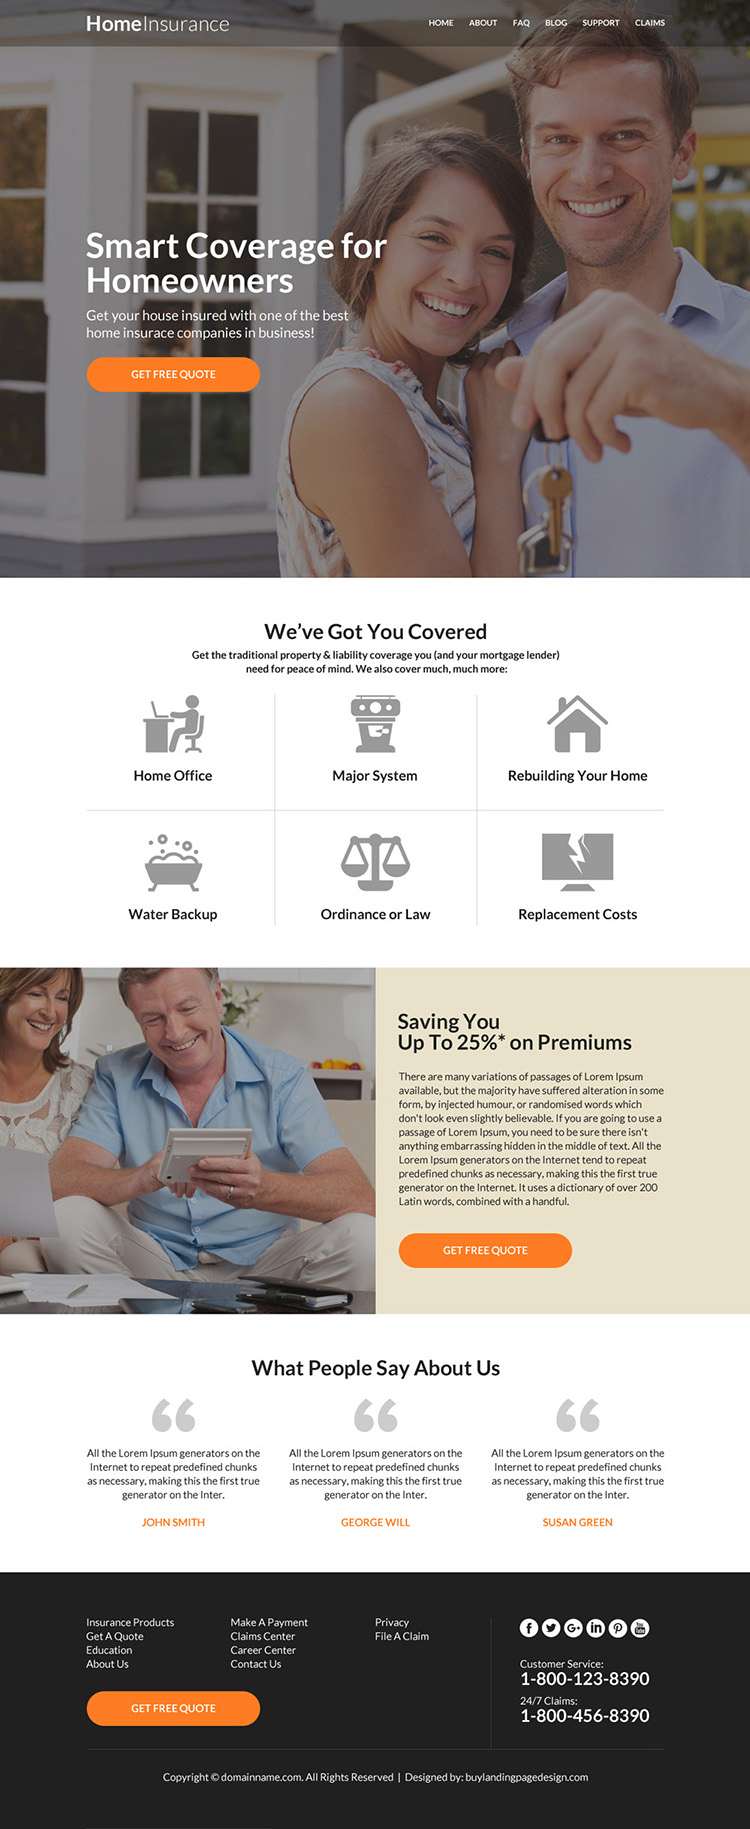 responsive homeowners insurance website design